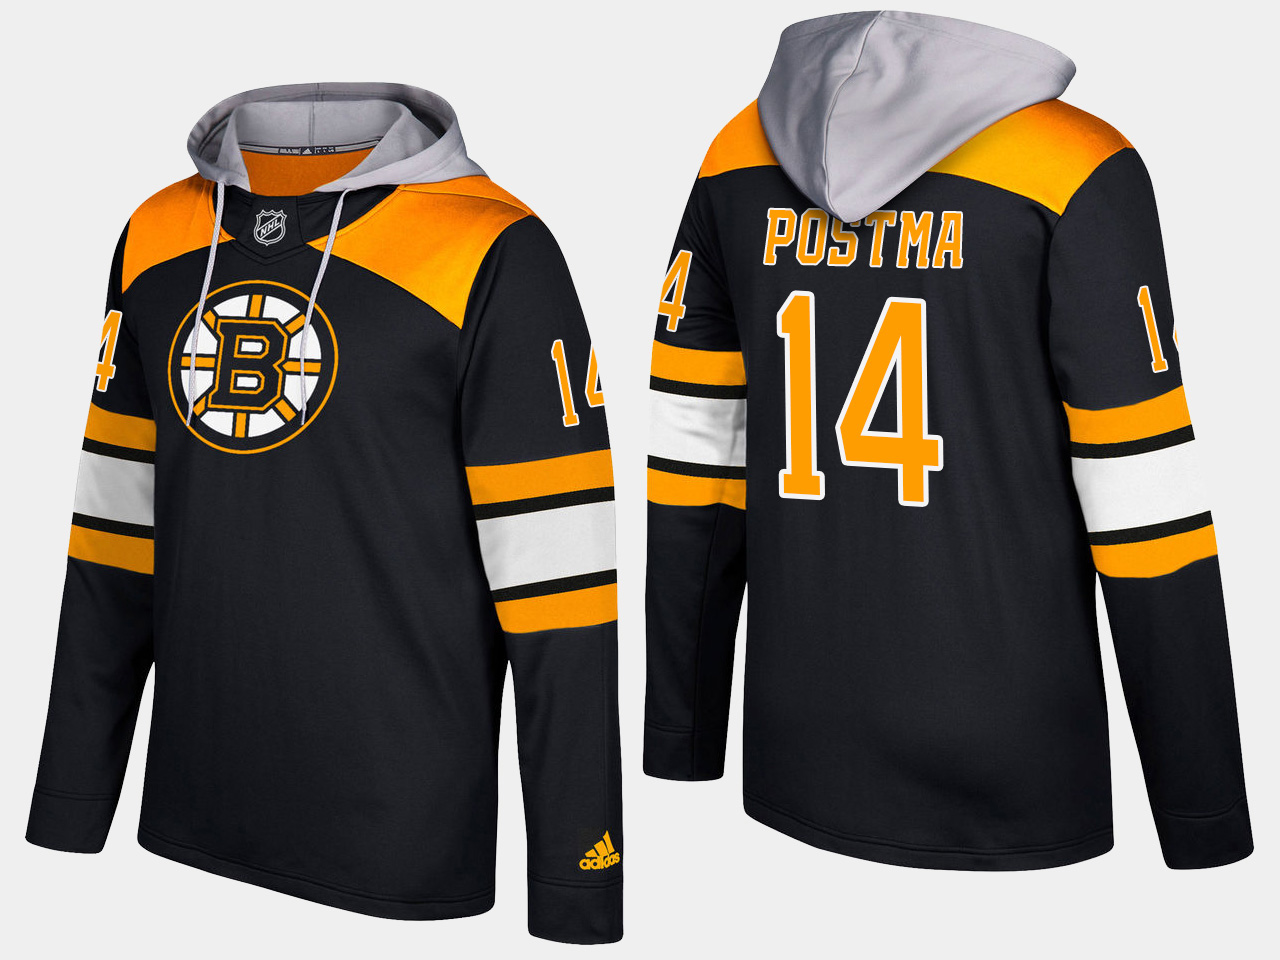 Men NHL Boston bruins 14 paul postma black hoodie